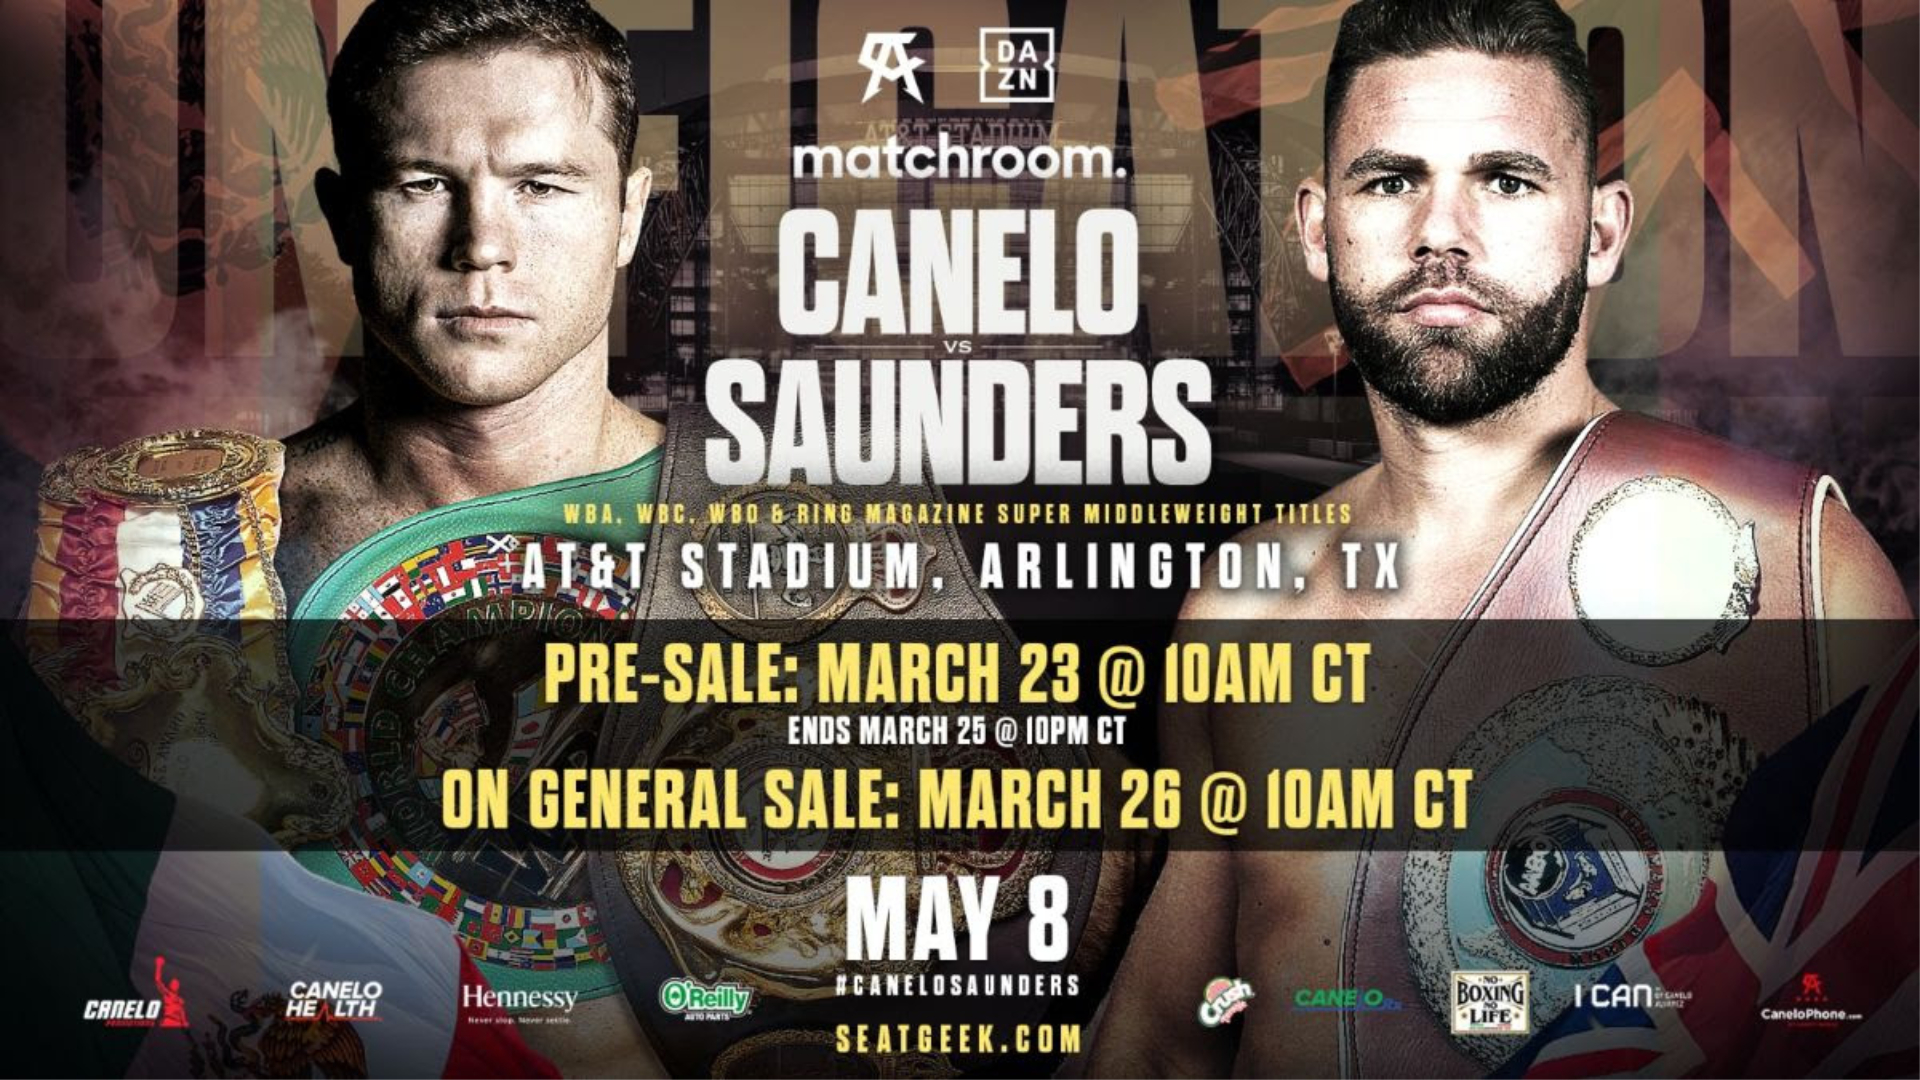 Canelo vs Saunders tonight Fight Live, Online TV Guide, Start Time, Reddit Stream, How to Live in iphone, Stream Online PPV, TV Channel